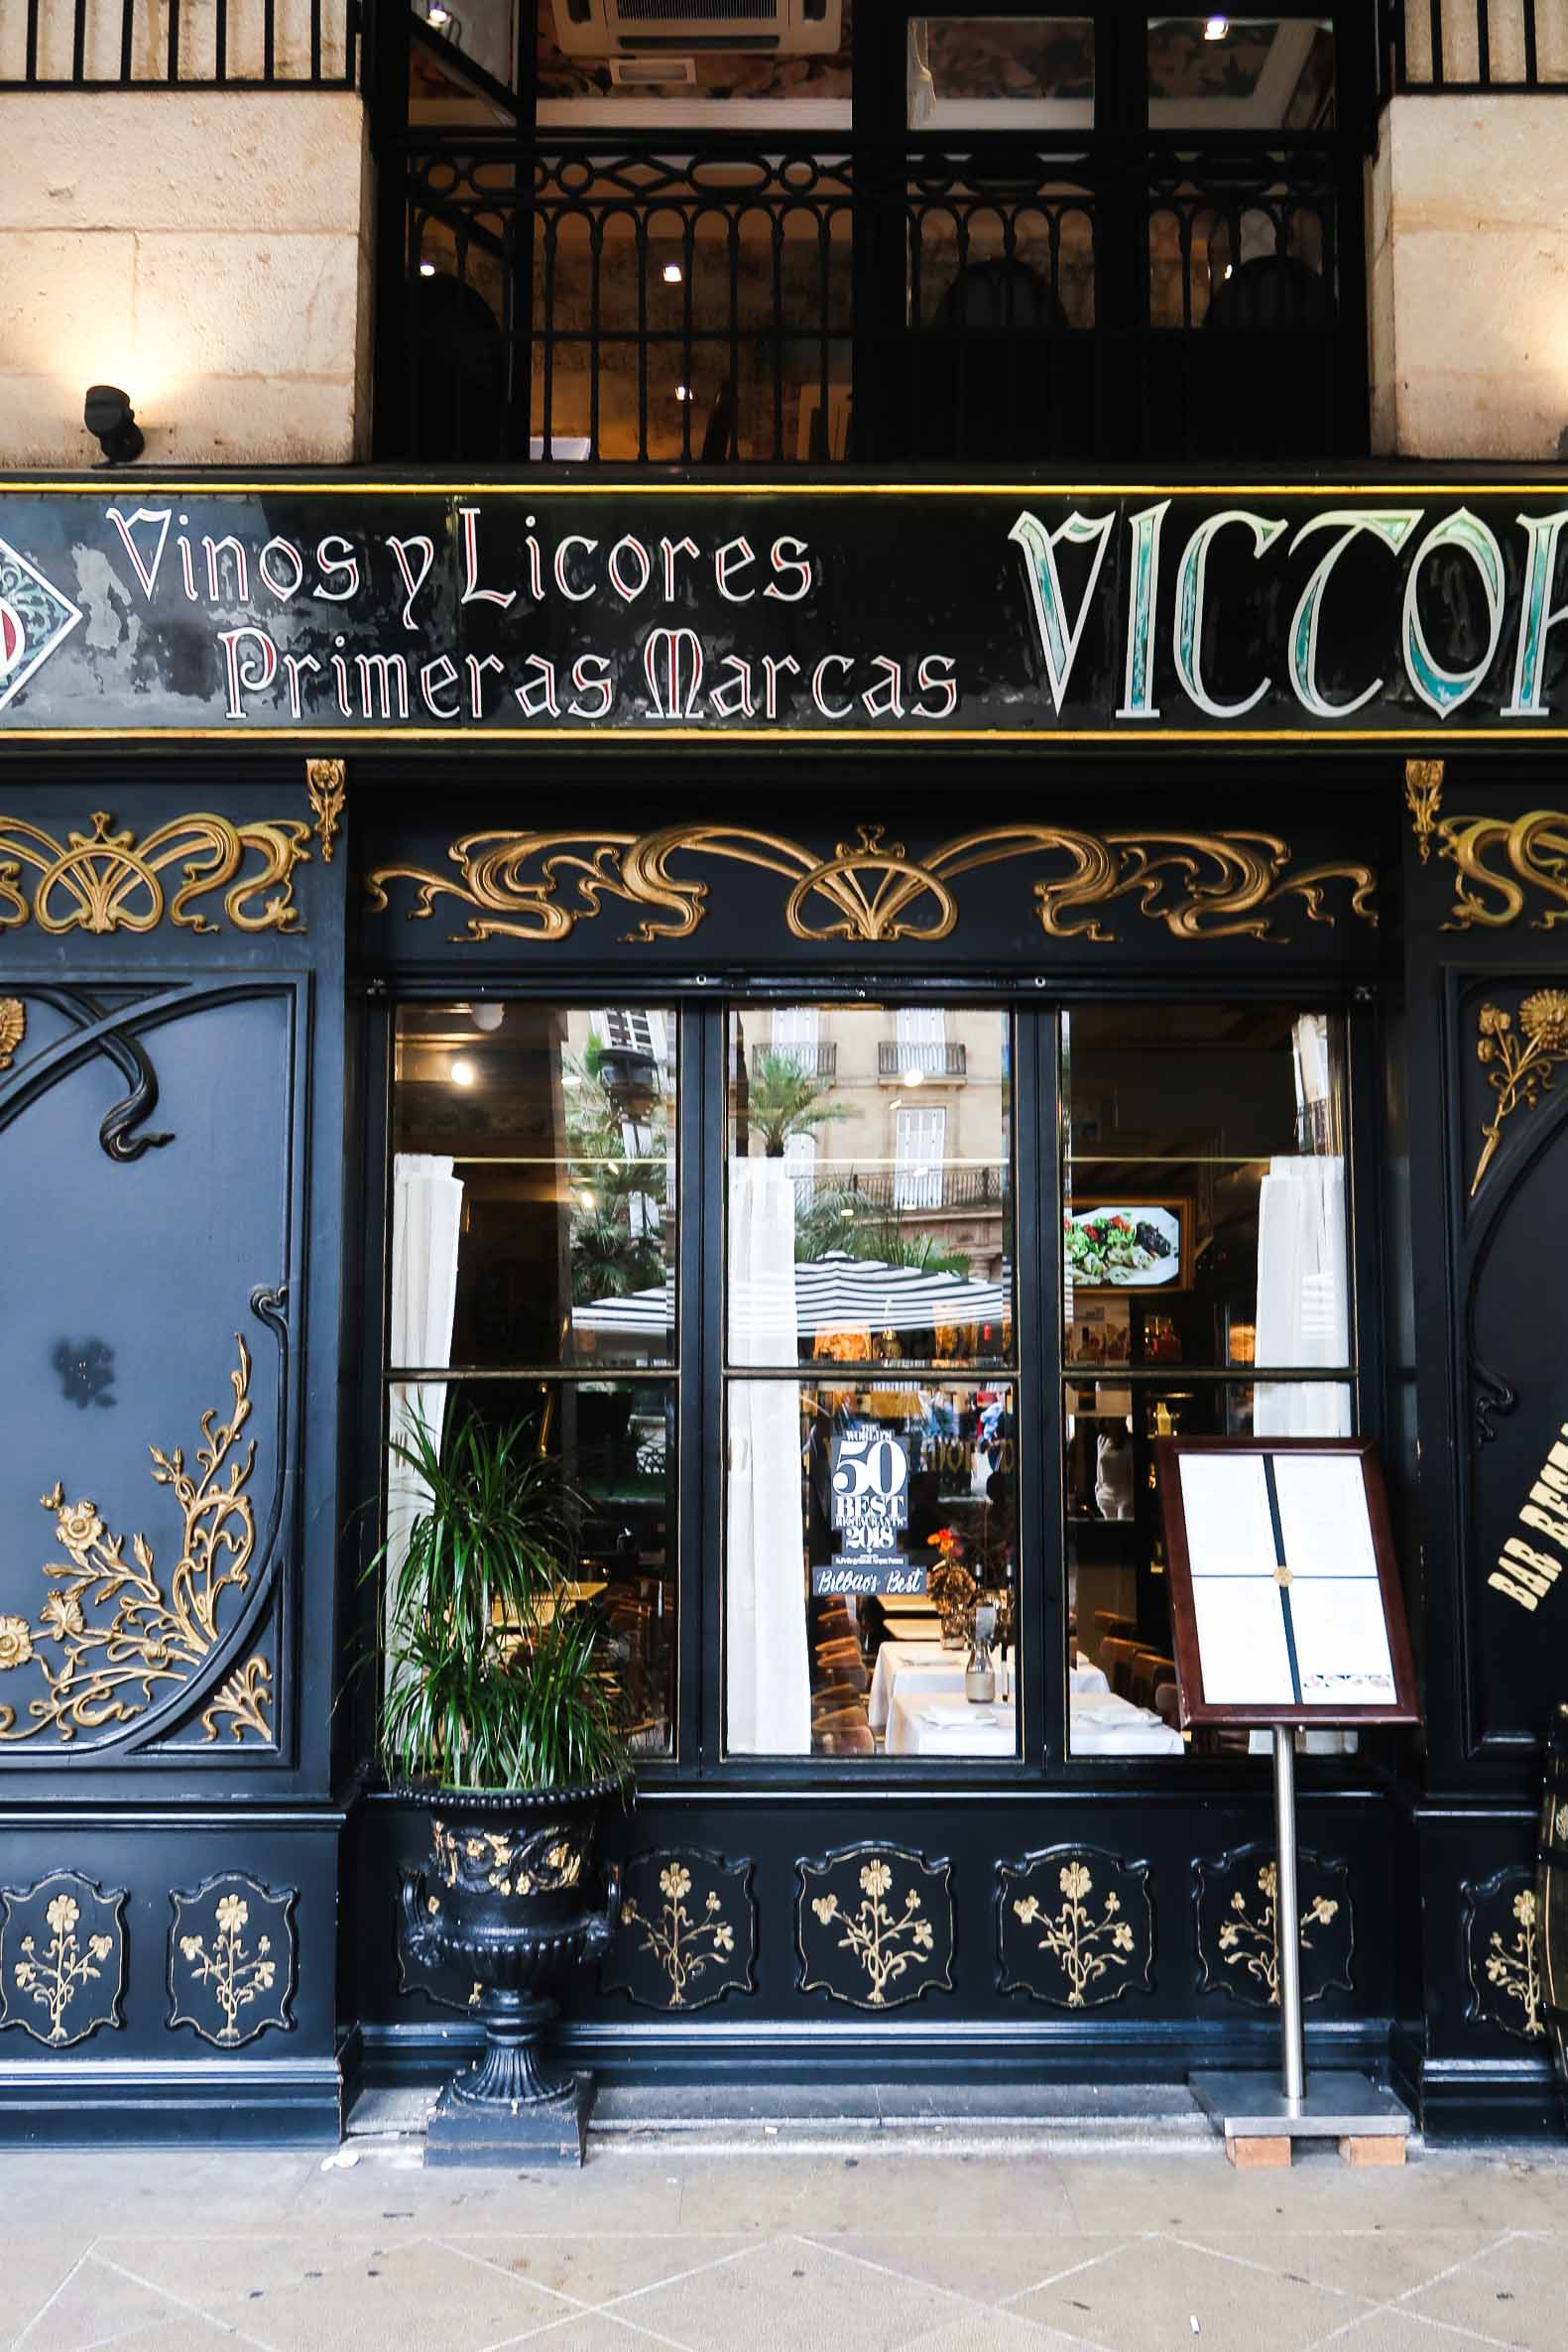 Victor Montes Restaurant | A Guide to The Best Pintxos Bars in Bilbao | Mondomulia